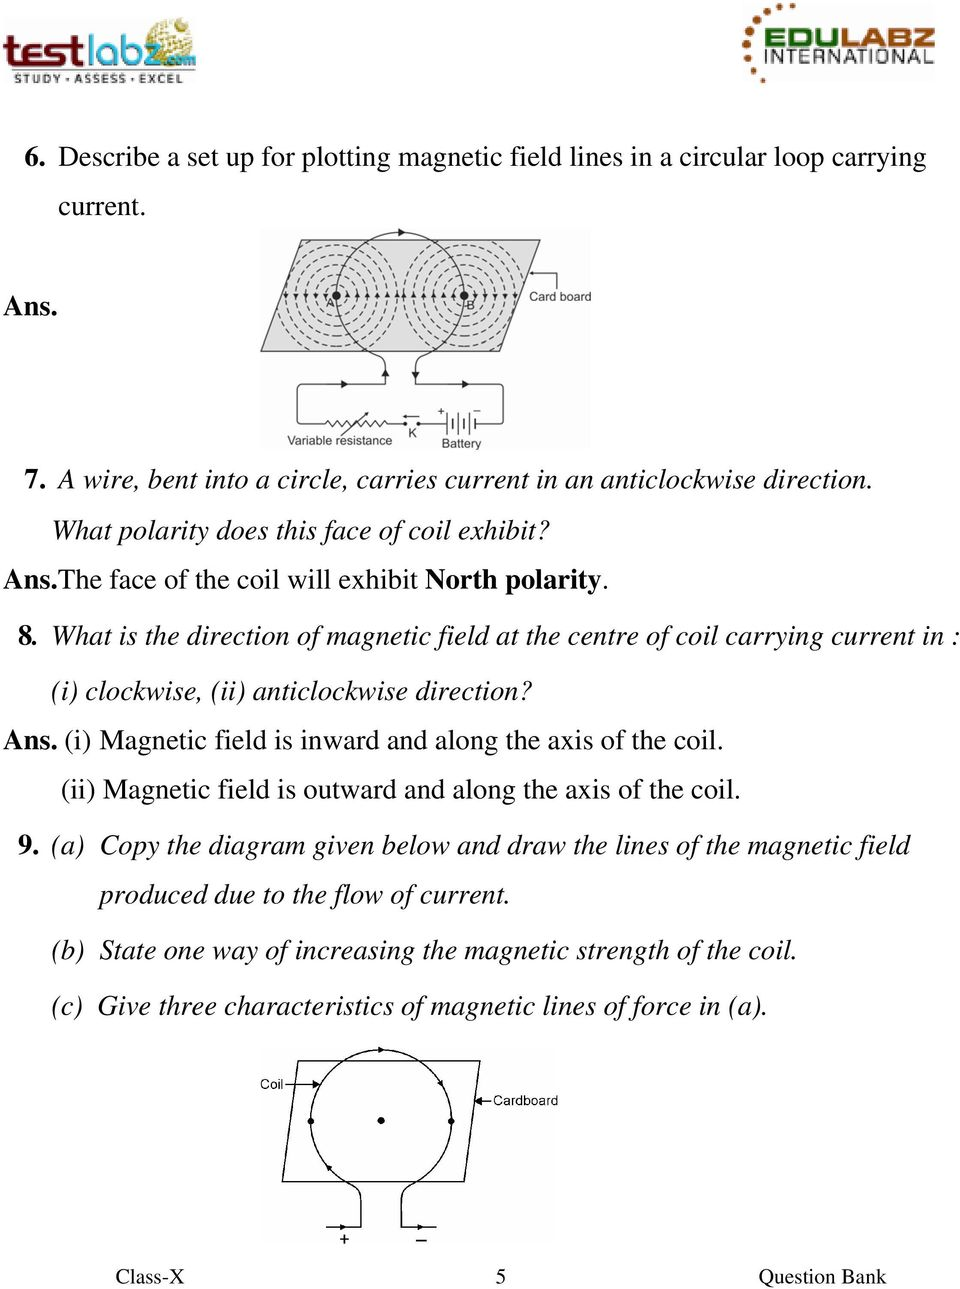 What is the direction of magnetic field at the centre of coil carrying current in : (i) clockwise, (ii) anticlockwise direction? Ans. (i) Magnetic field is inward and along the axis of the coil.